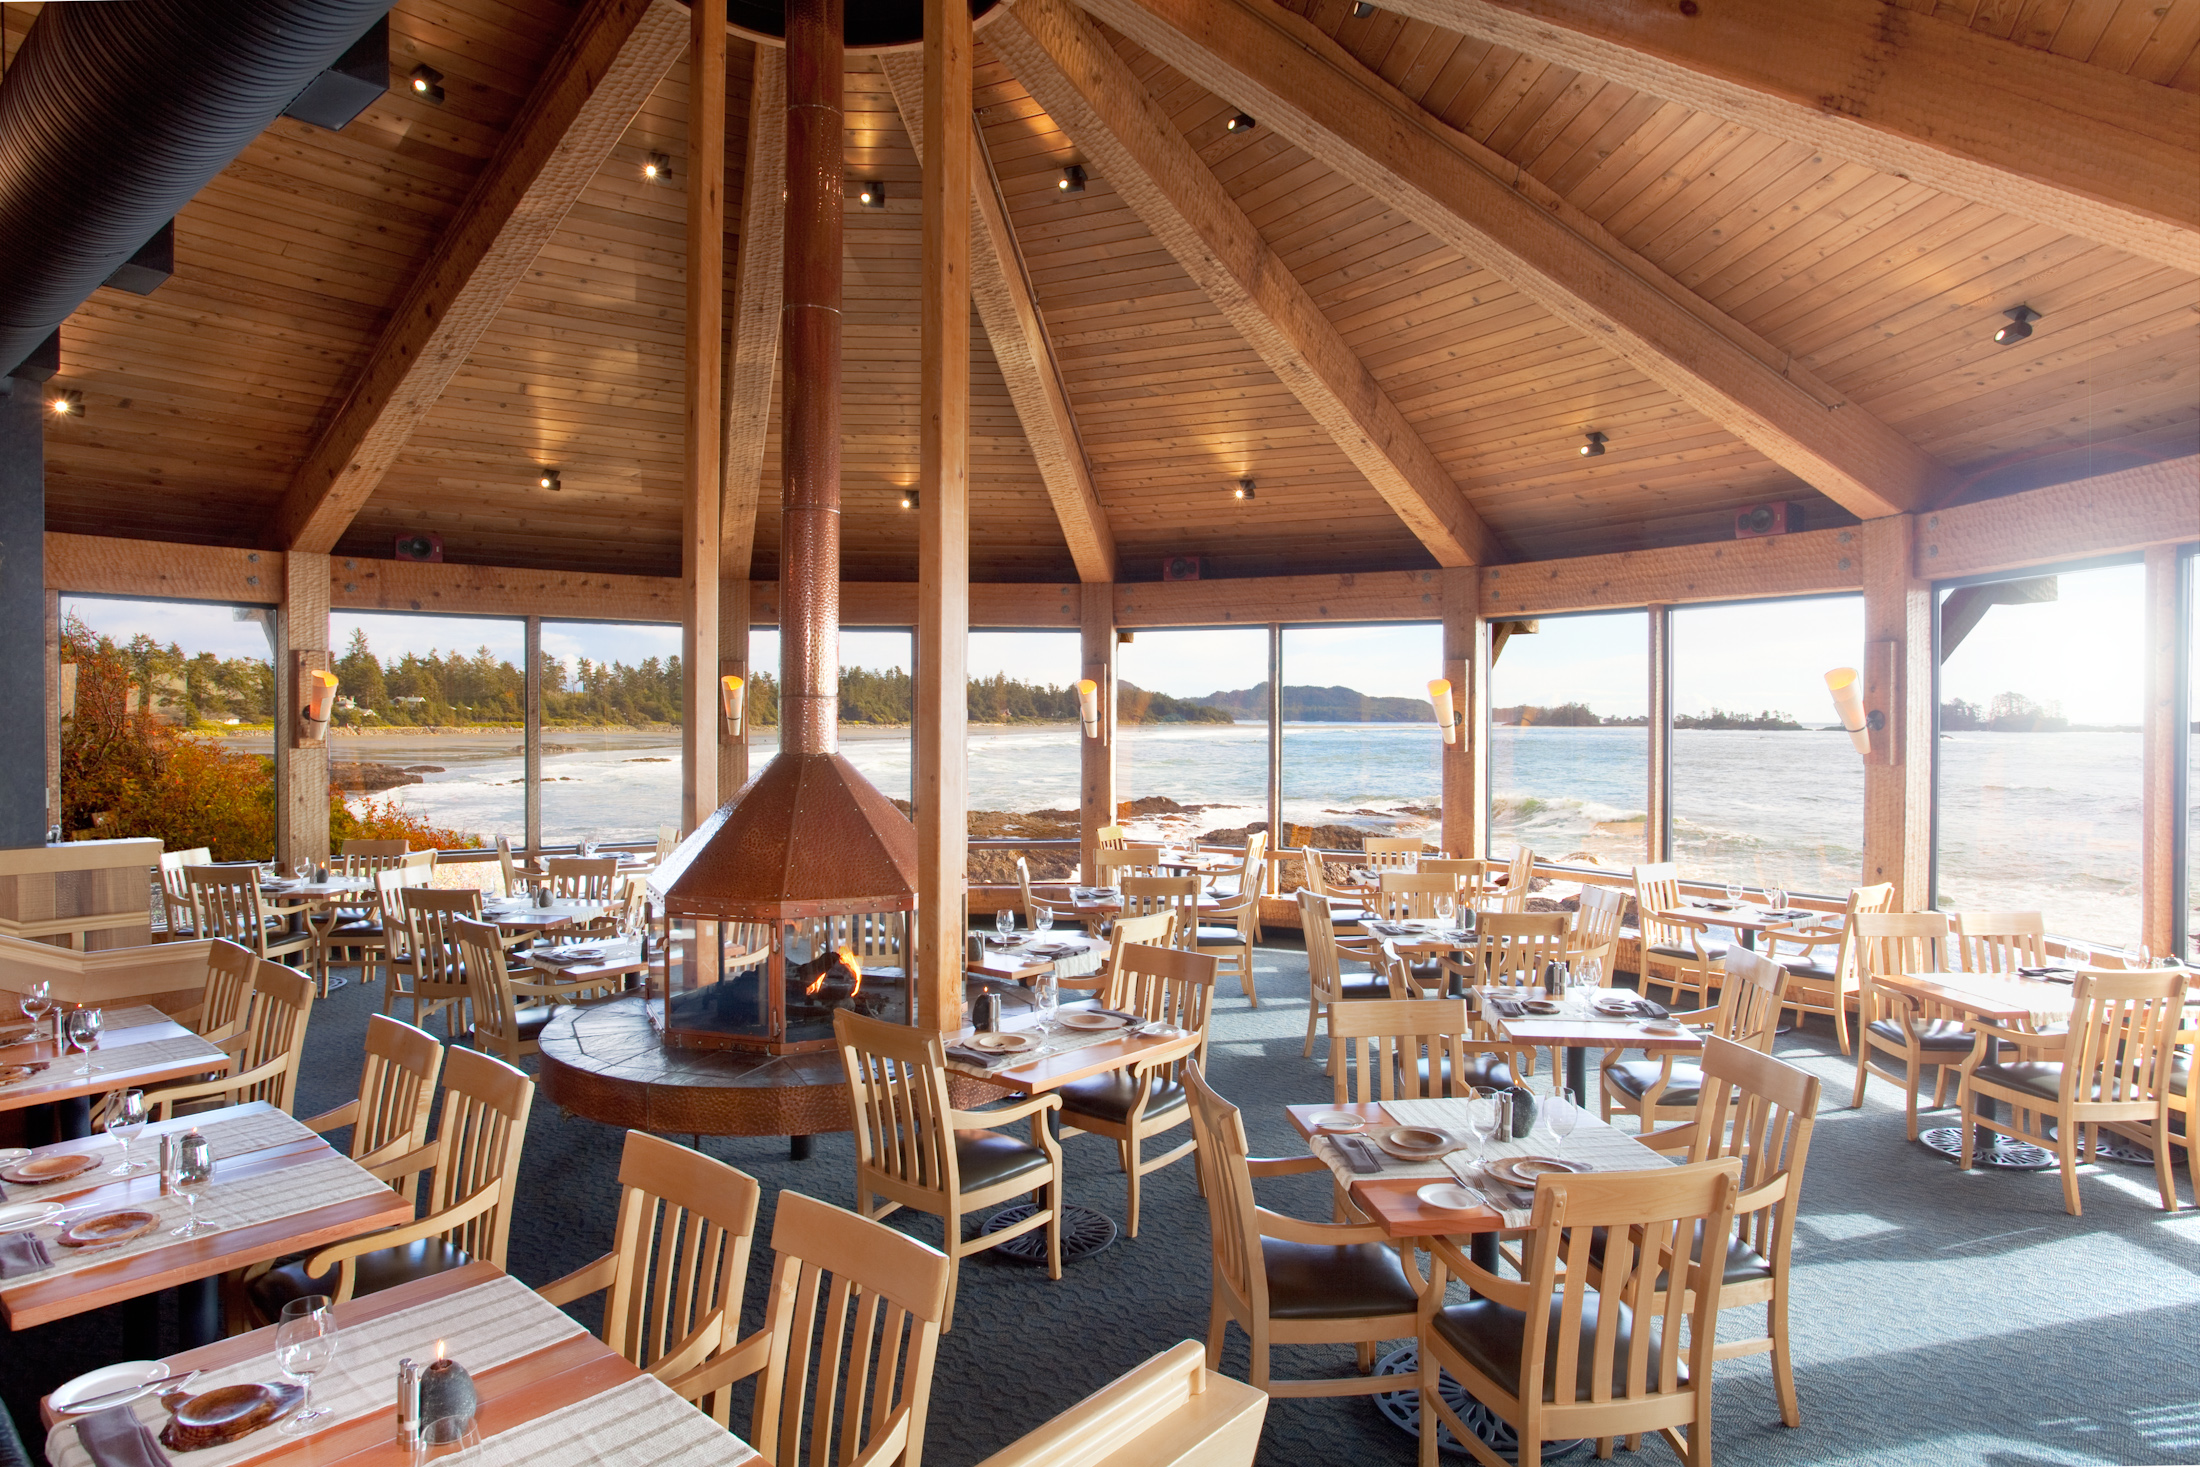 Wikaninnish Hotel in Tofino on Vancouver Island